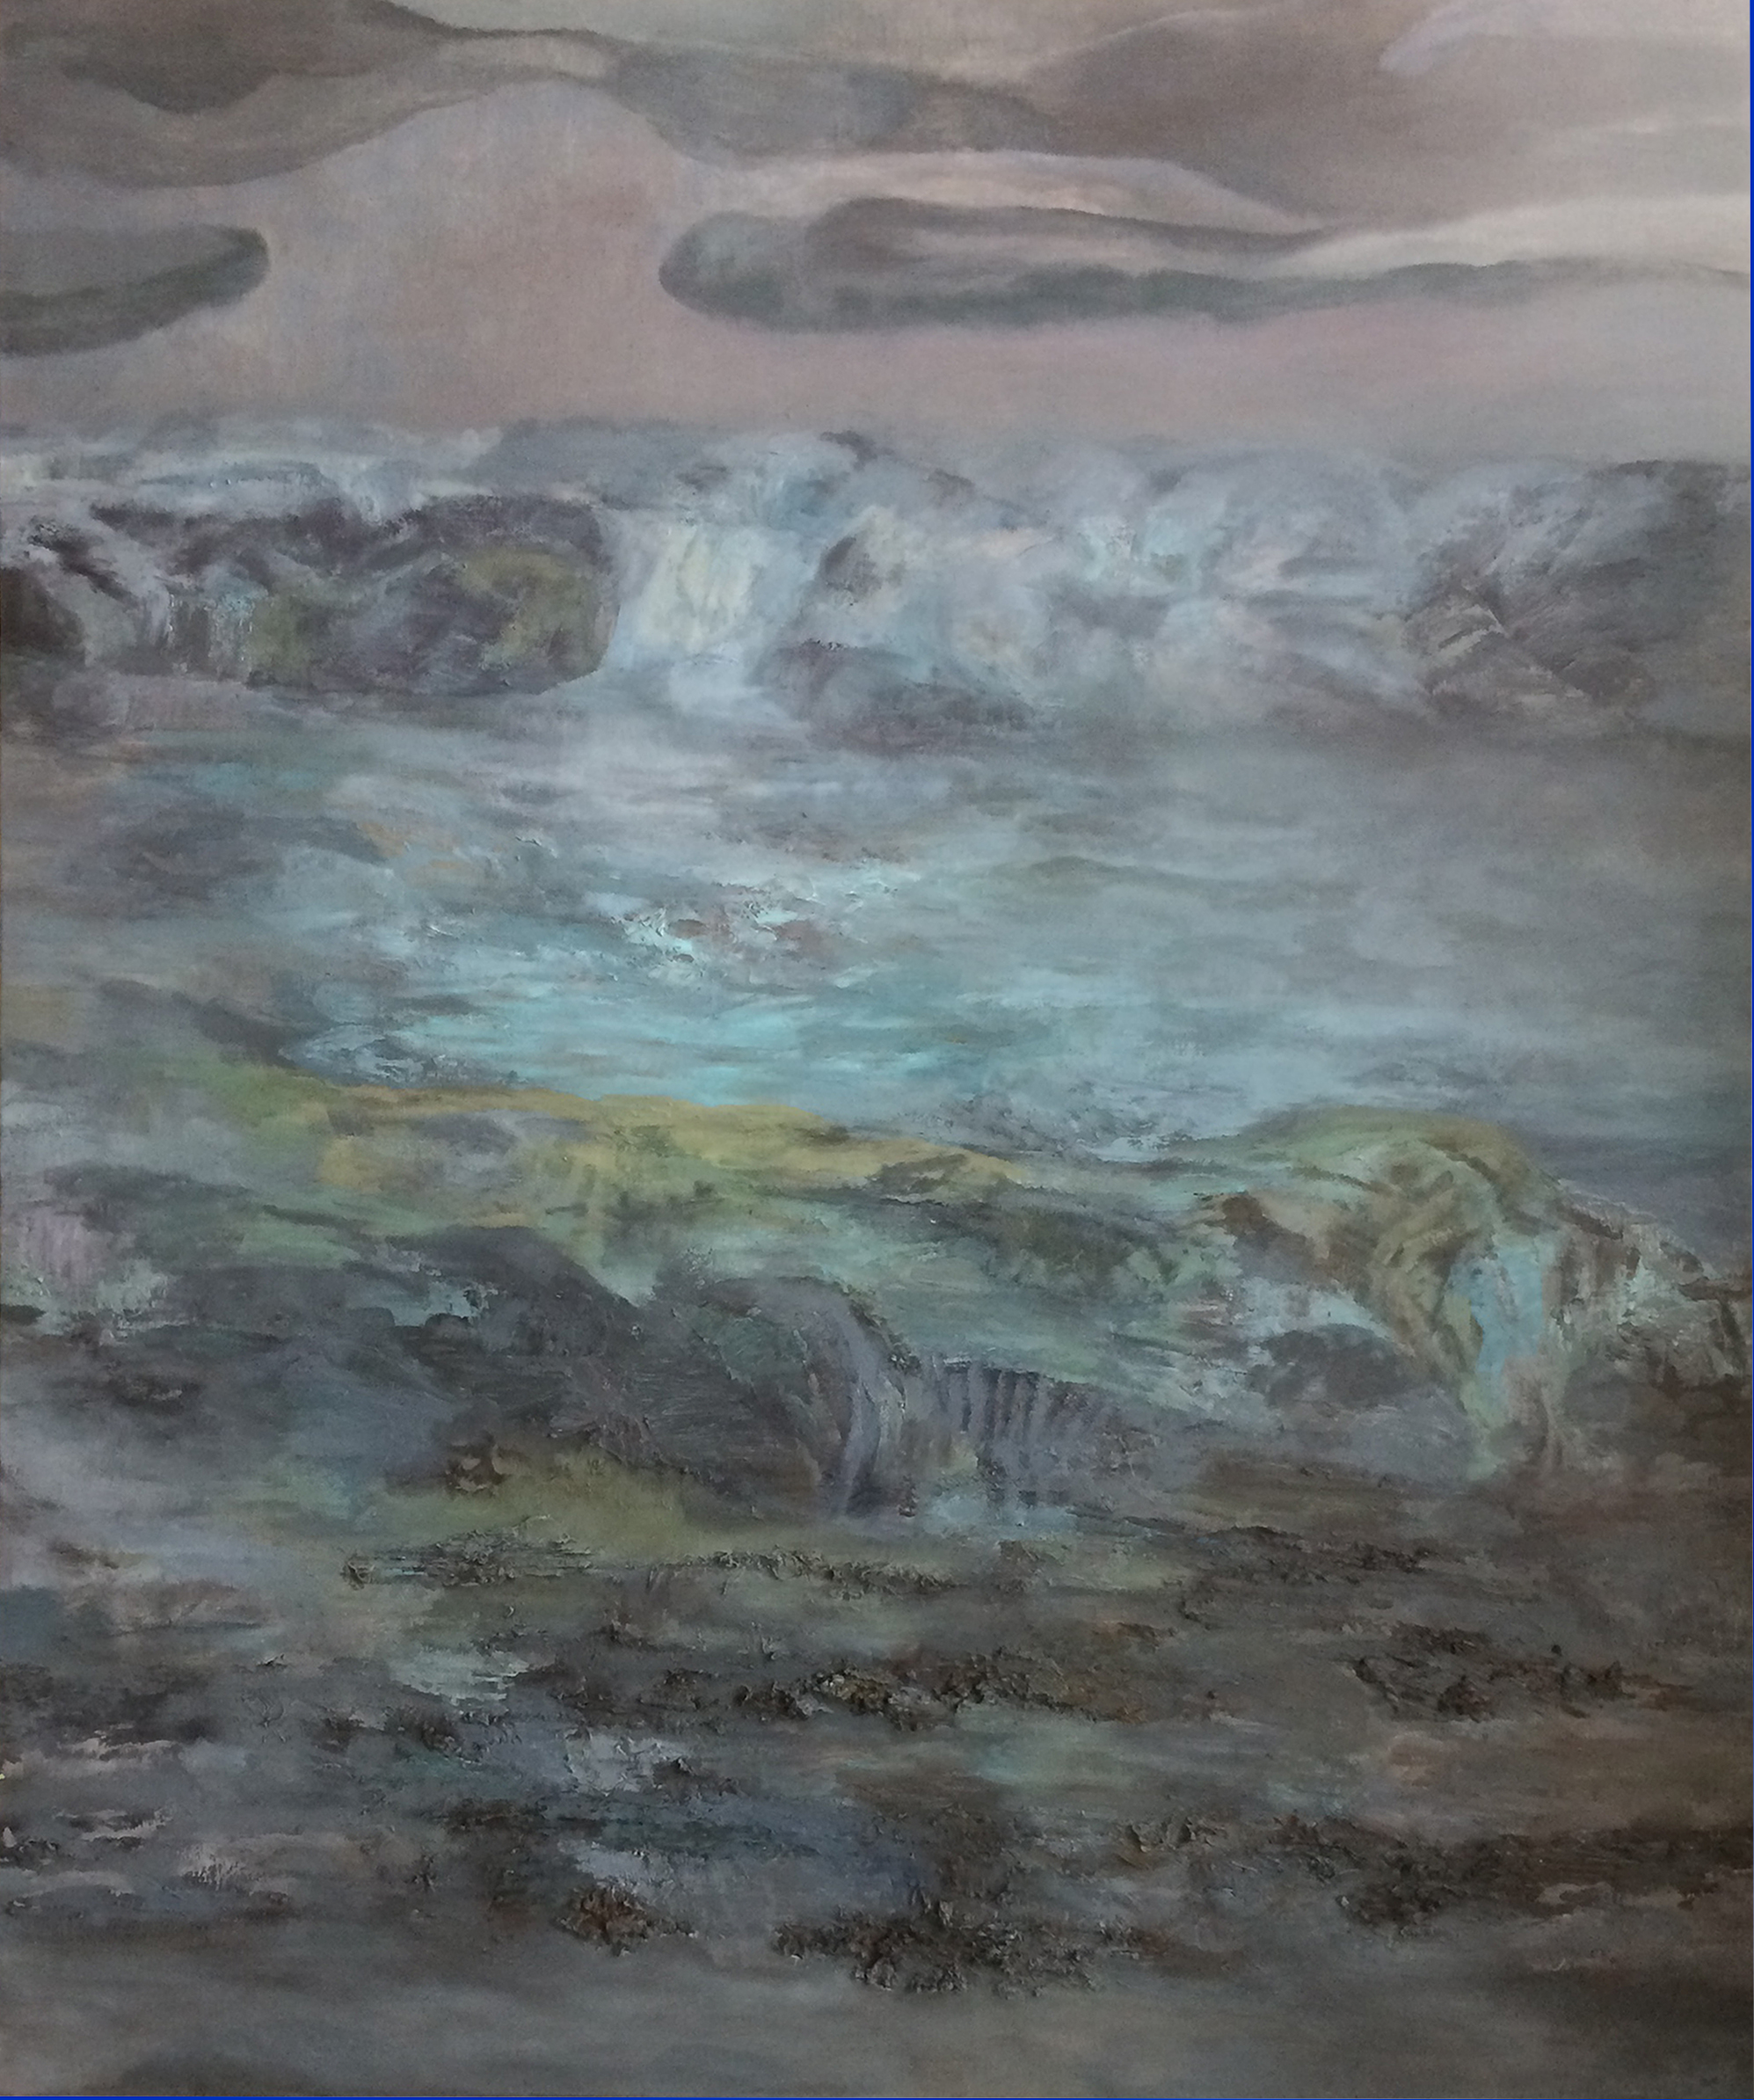 Torrent,  60 x 22 inches, Oil on Canvas, 2019